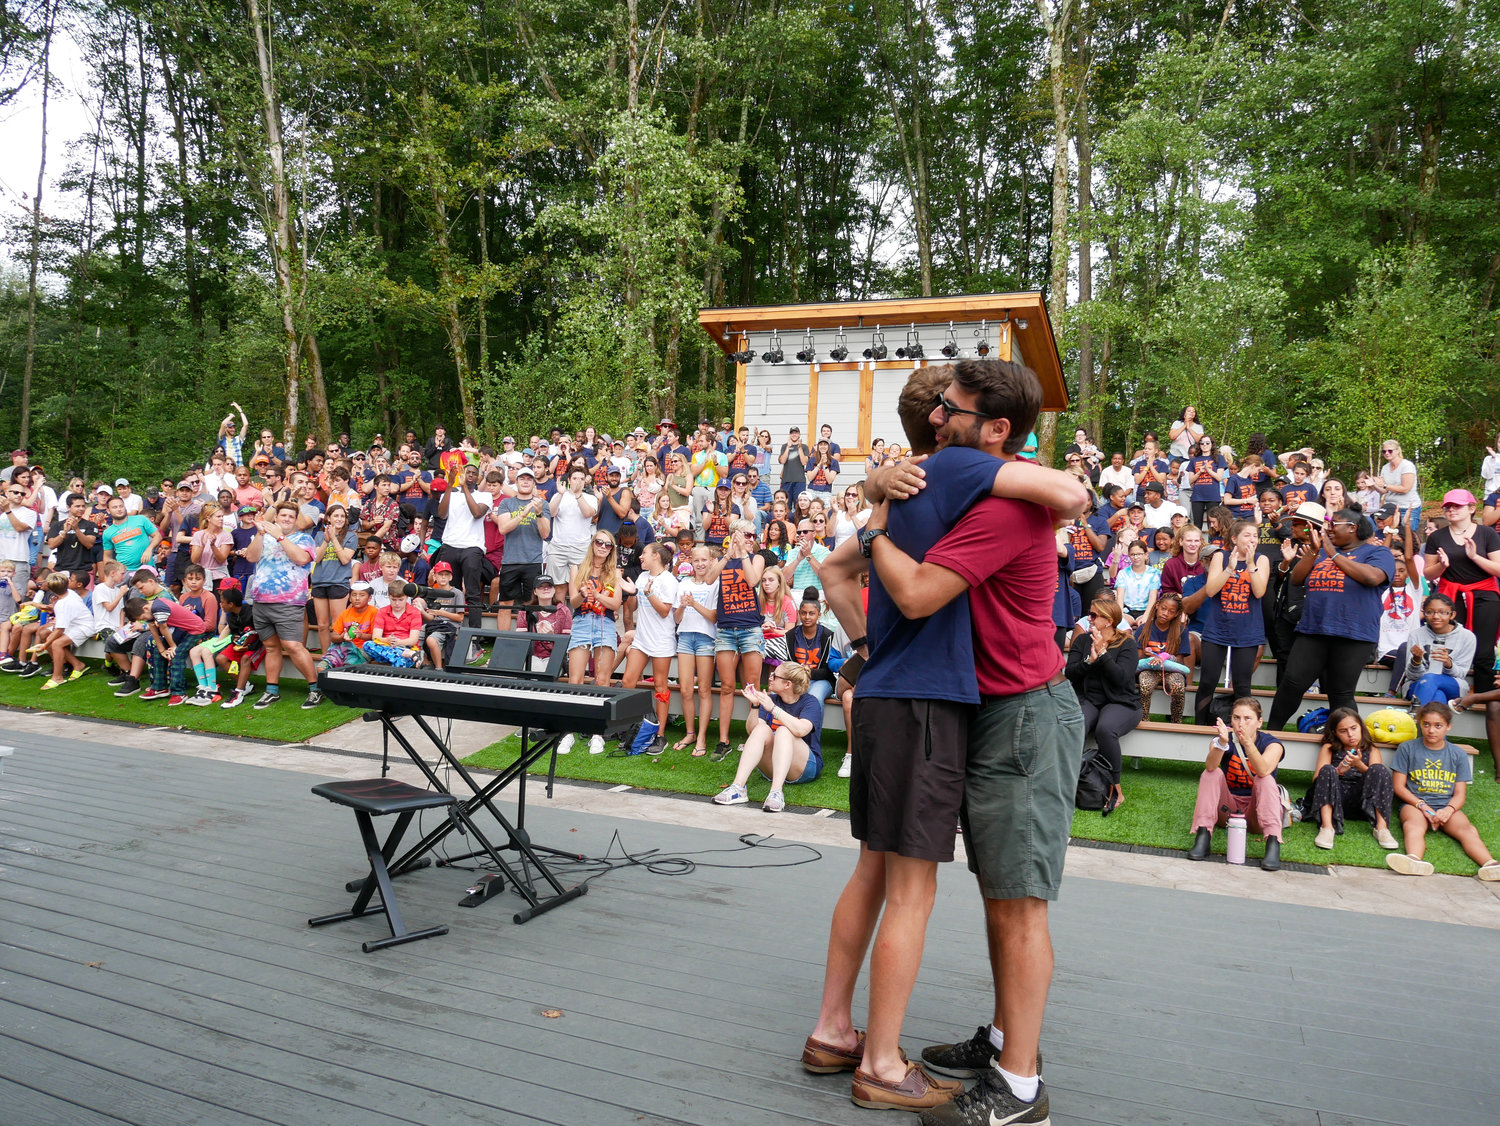 Director and volunteer hugging on stage